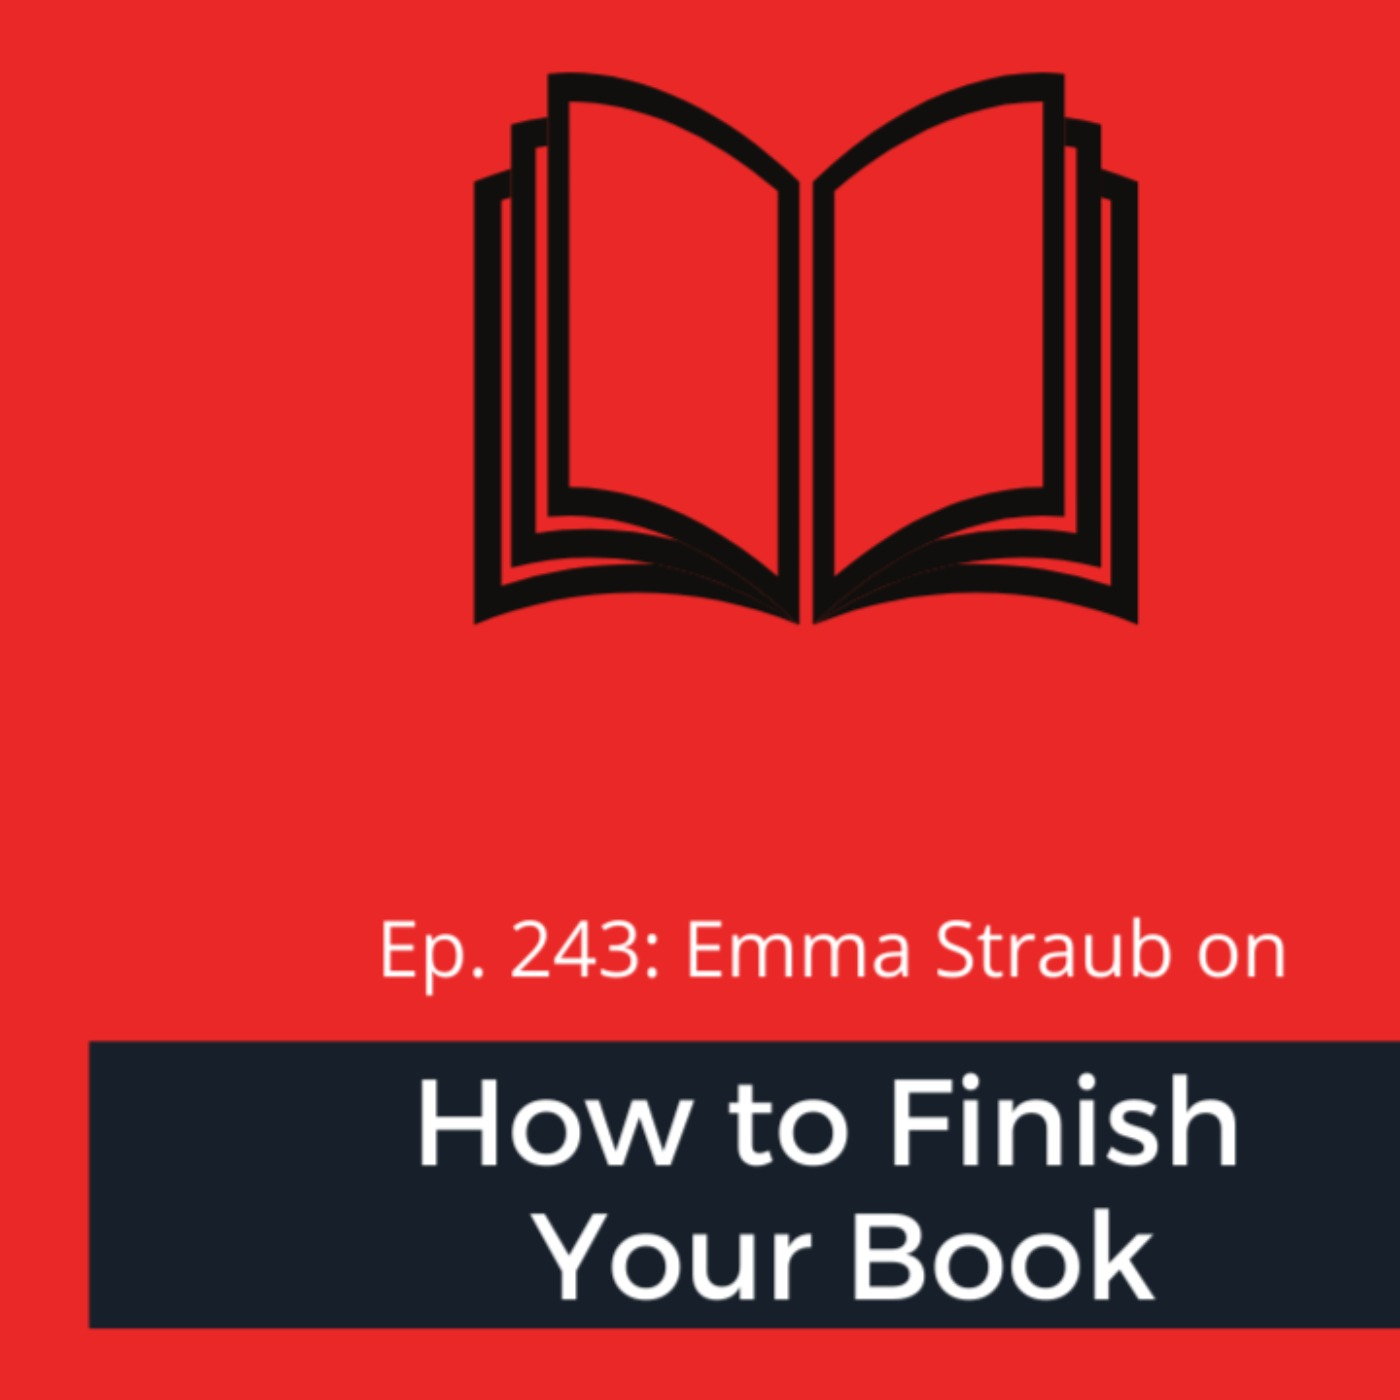 Ep. 243: Emma Straub on How to Finish Your Book